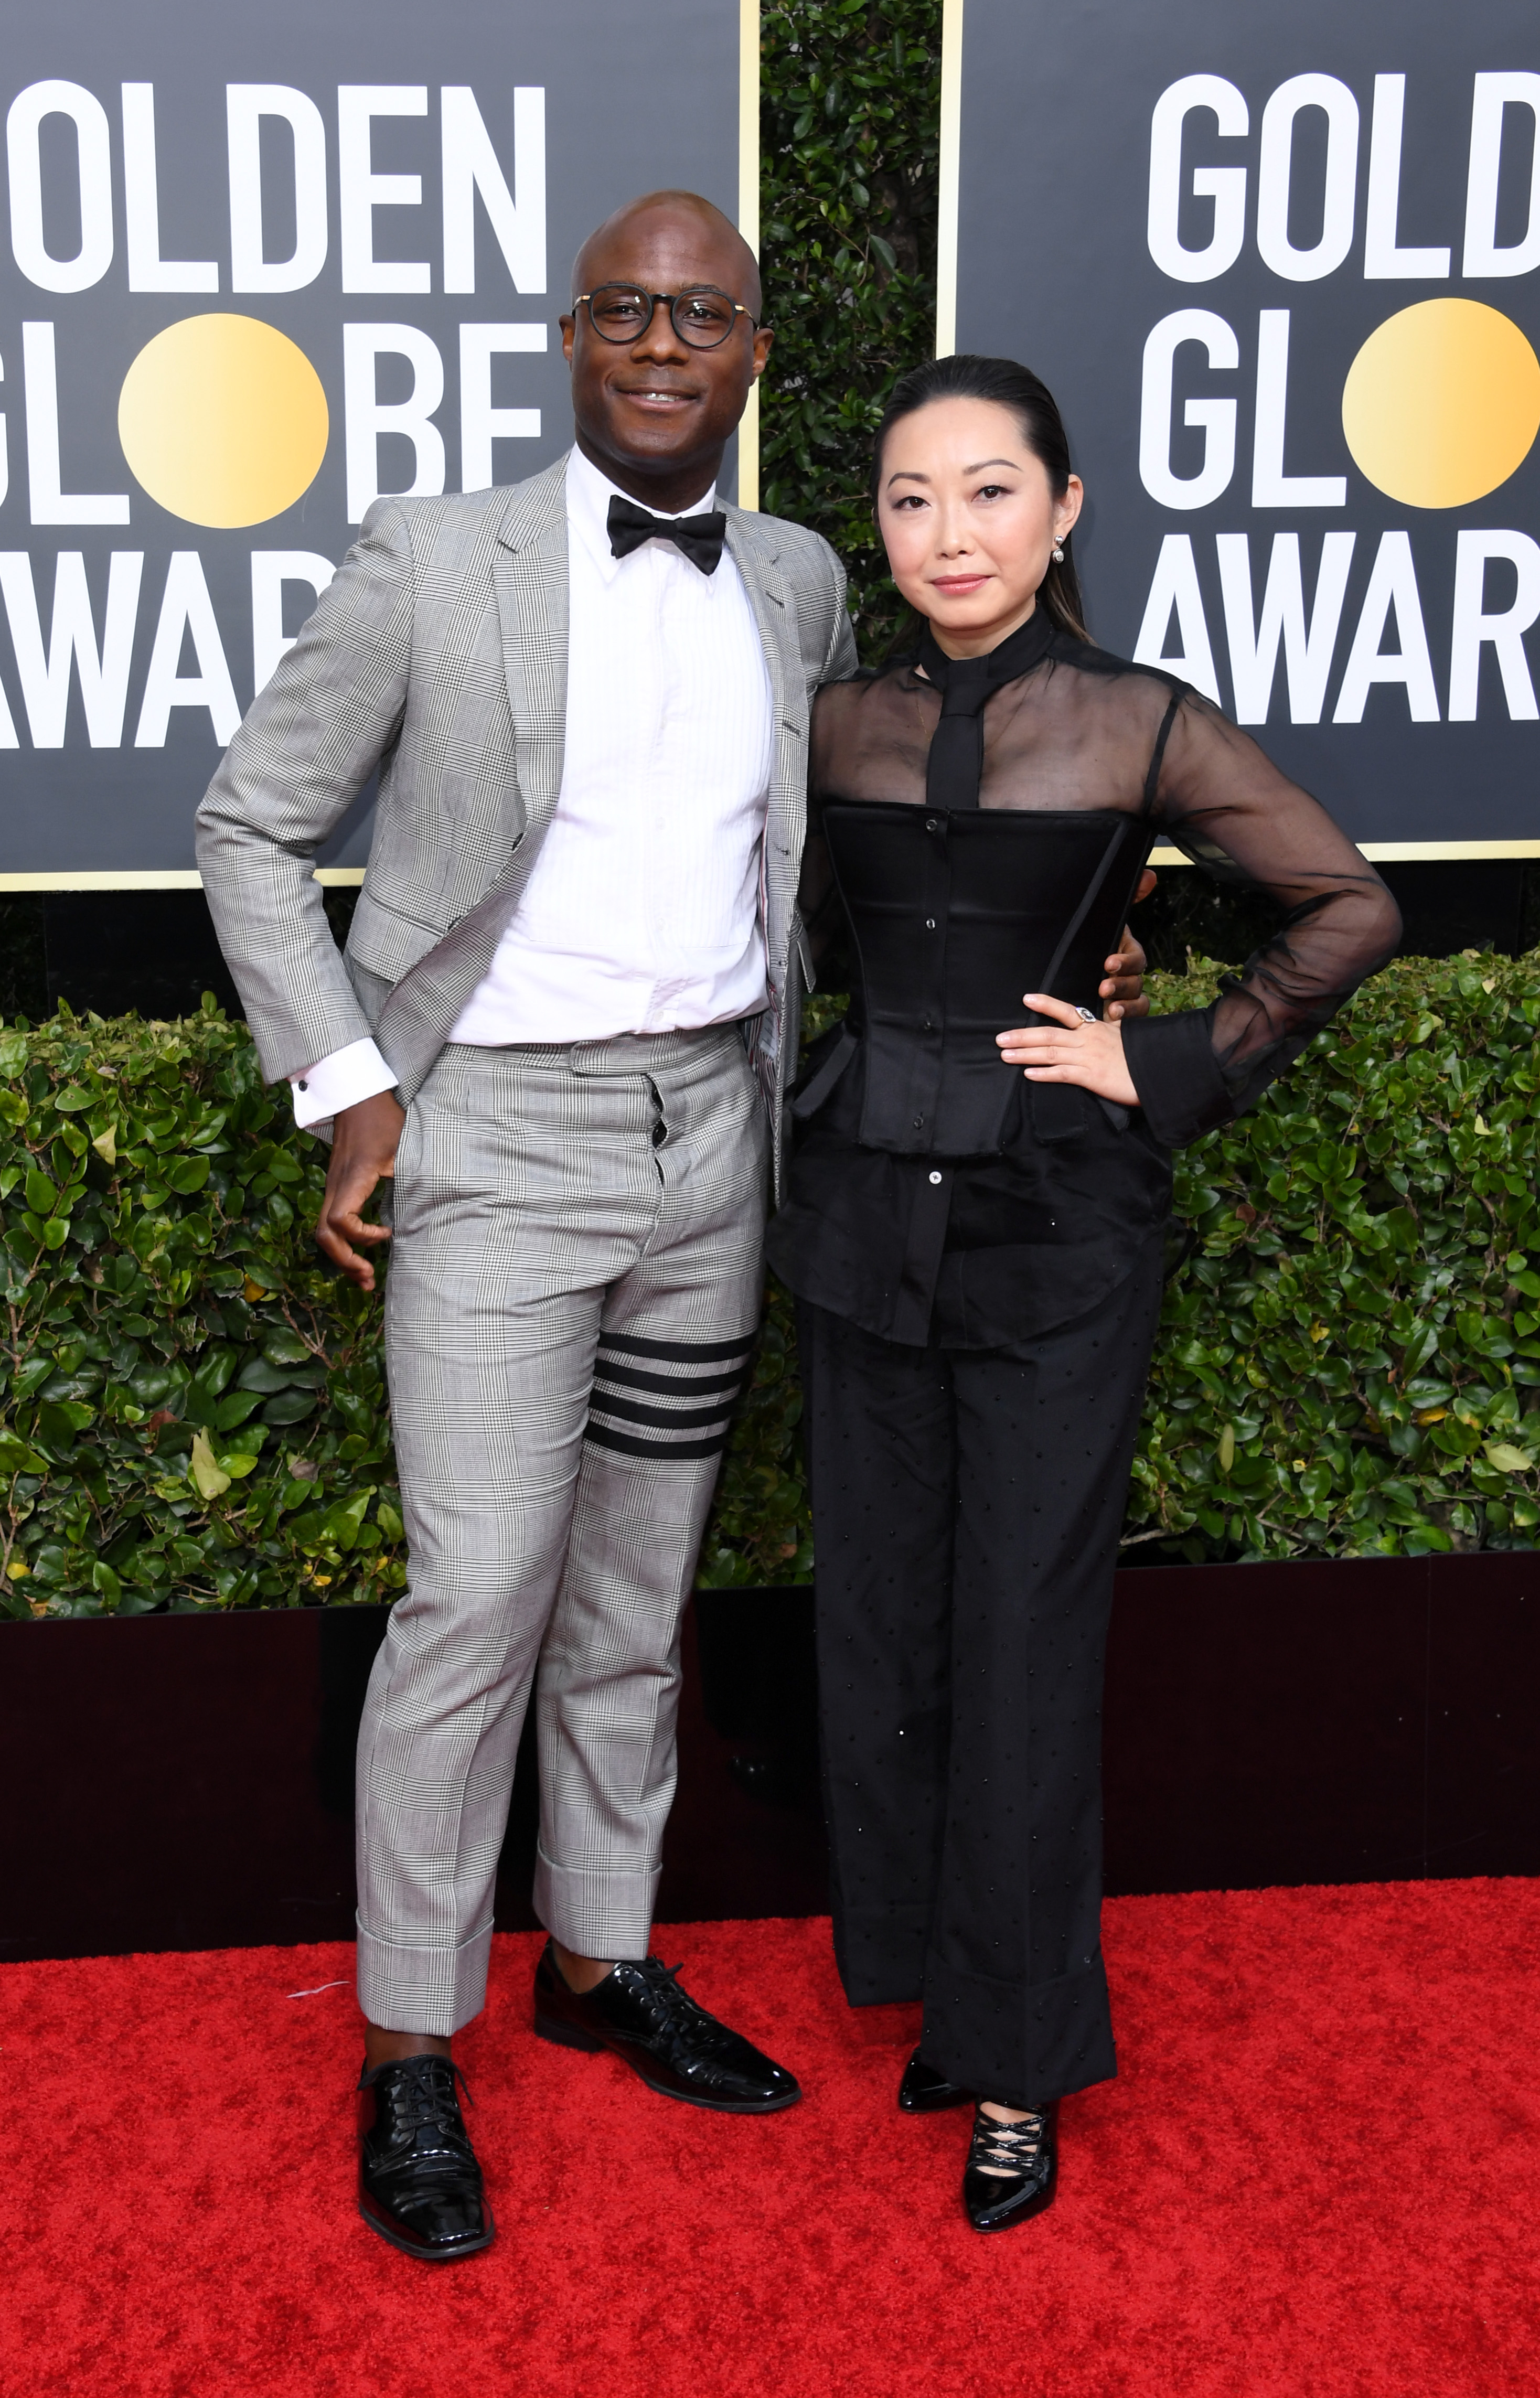 BEVERLY HILLS, CALIFORNIA - JANUARY 05: Barry Jenkins (L) and  Lulu Wang attend the 77th Annual Golden Globe Awards at The Beverly Hilton Hotel on January 05, 2020 in Beverly Hills, California. (Photo by Jon Kopaloff/Getty Images)